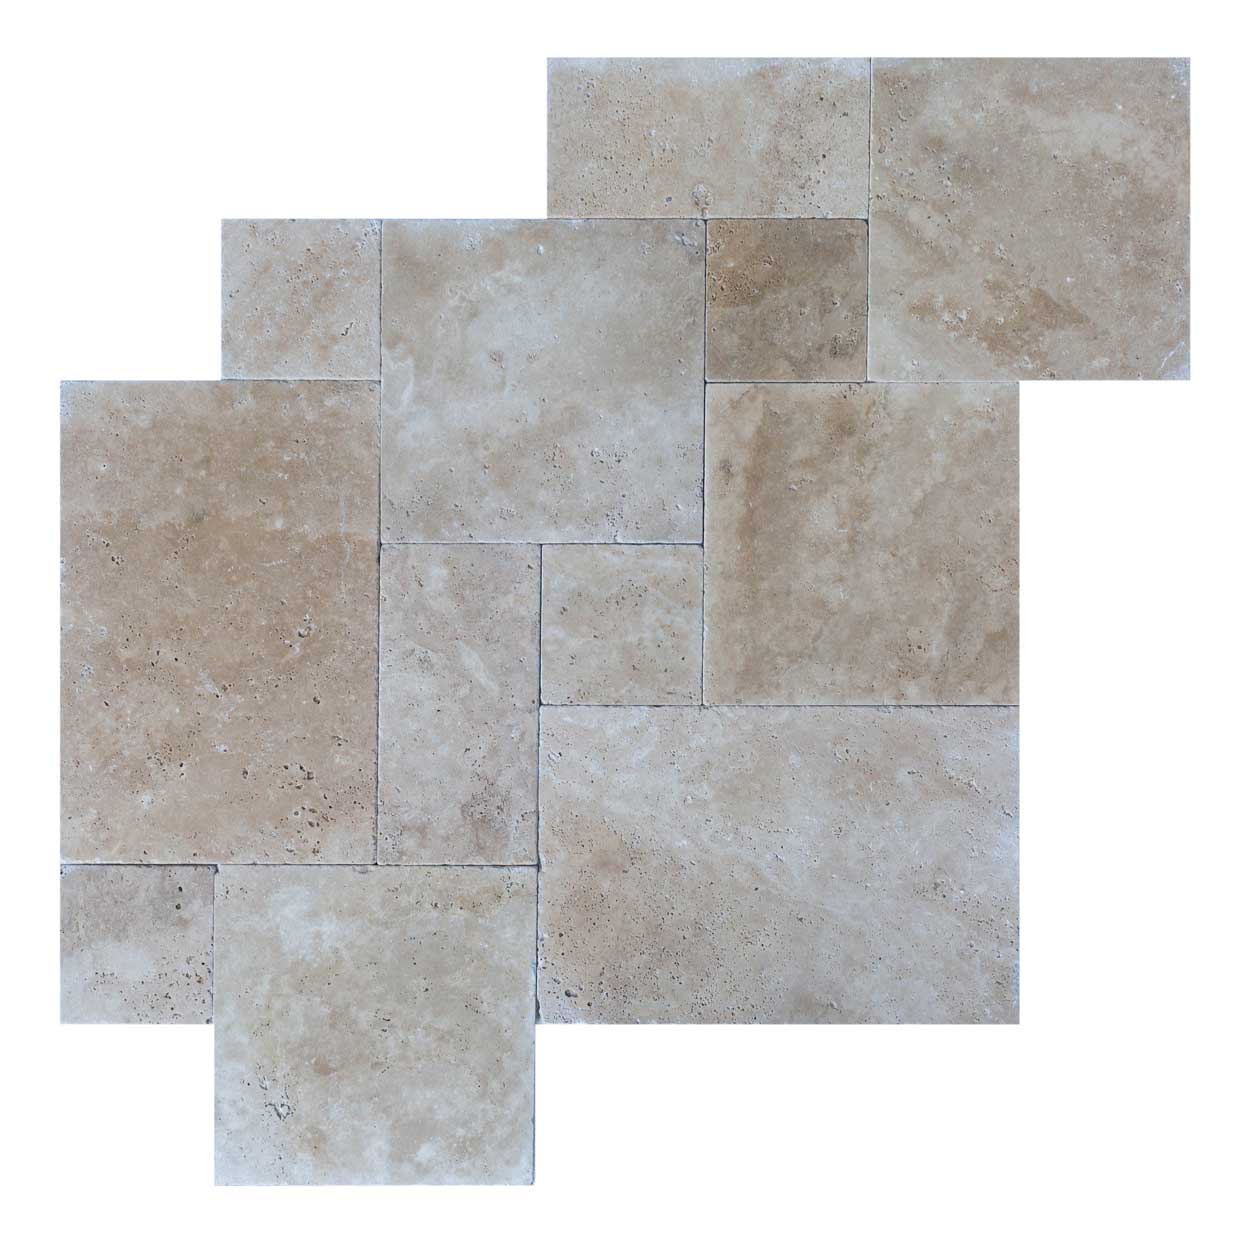 Clic Light Antique Pattern Travertine Tiles